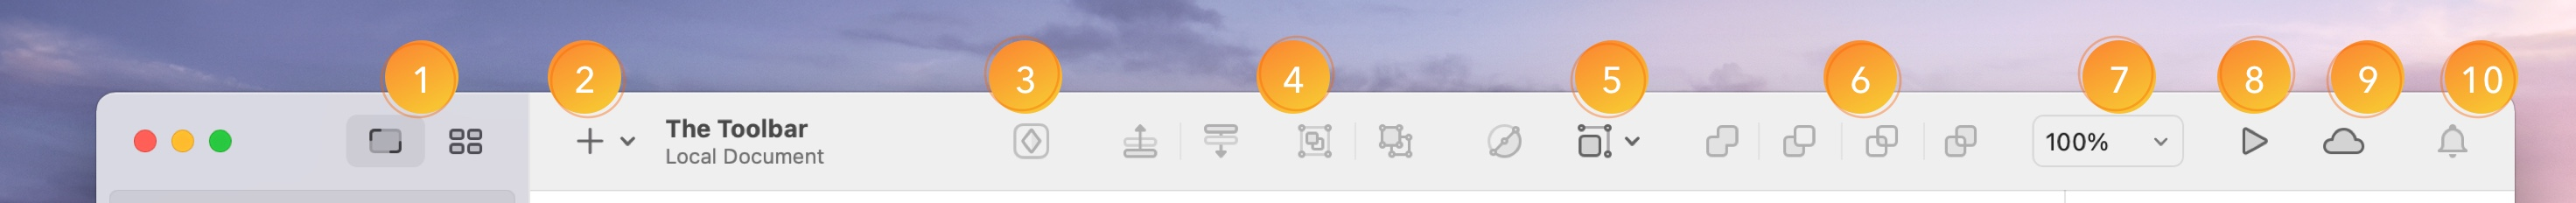 An annotated image showing the default toolbar options in Sketch.